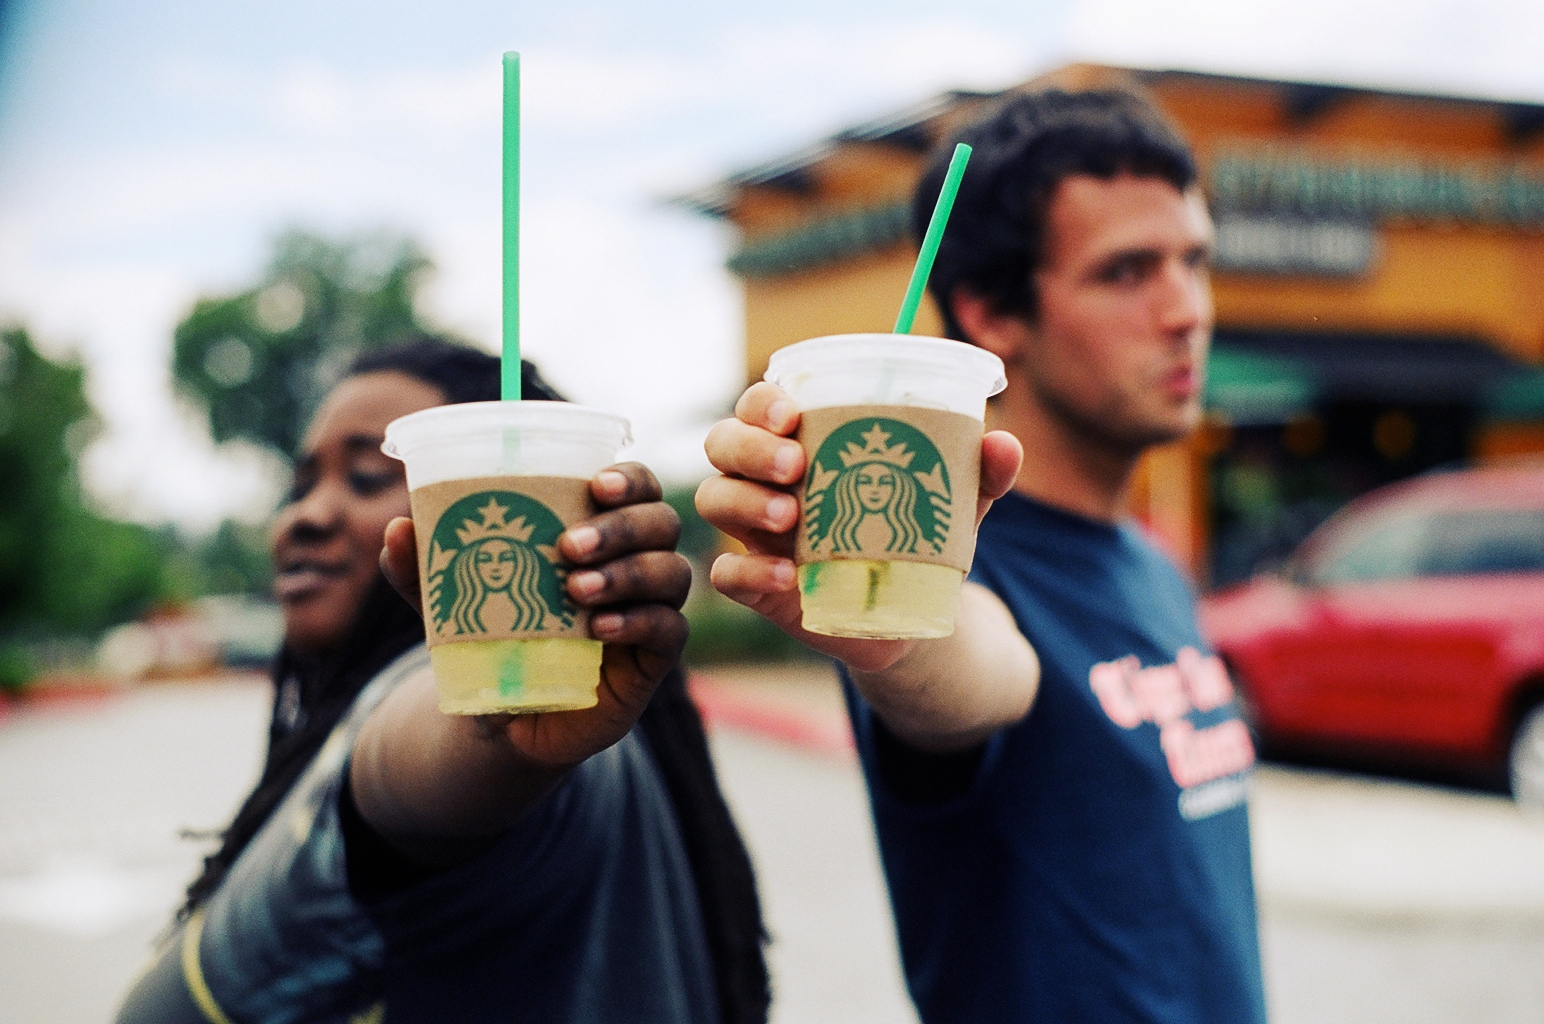 starbucks-film-02.jpg